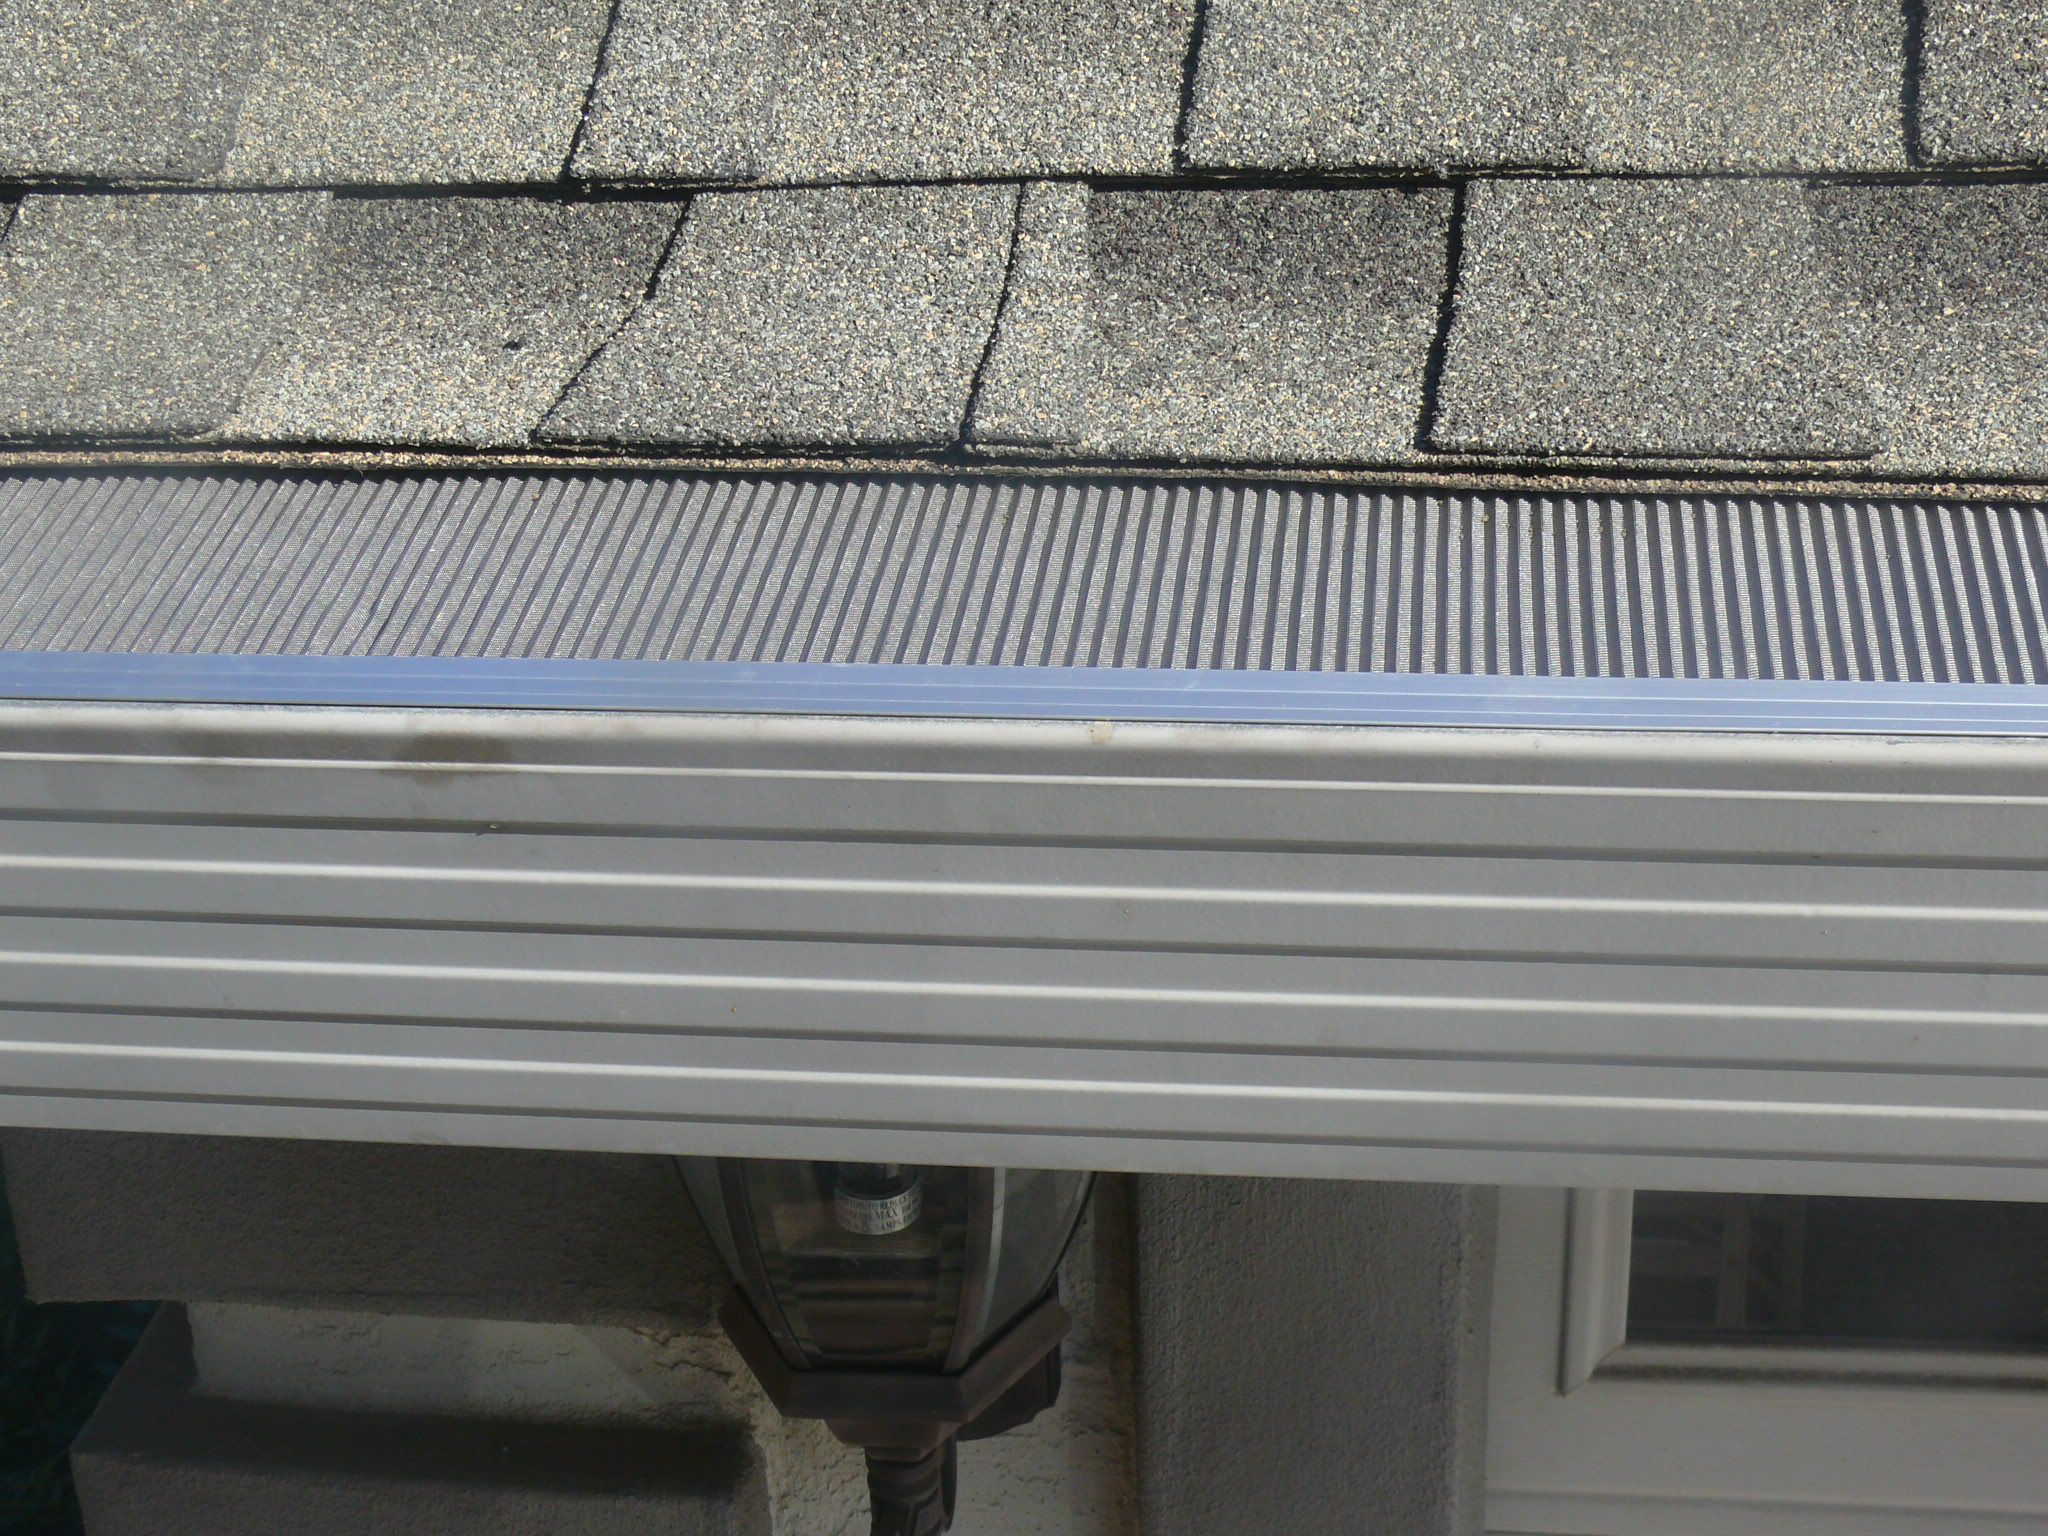 The Leafblaster Gutter Protection System Consists Of Three Main Components A Front Anodized Aluminum Drip Ed Backyard Makeover Roof Shingles Gutter Protection